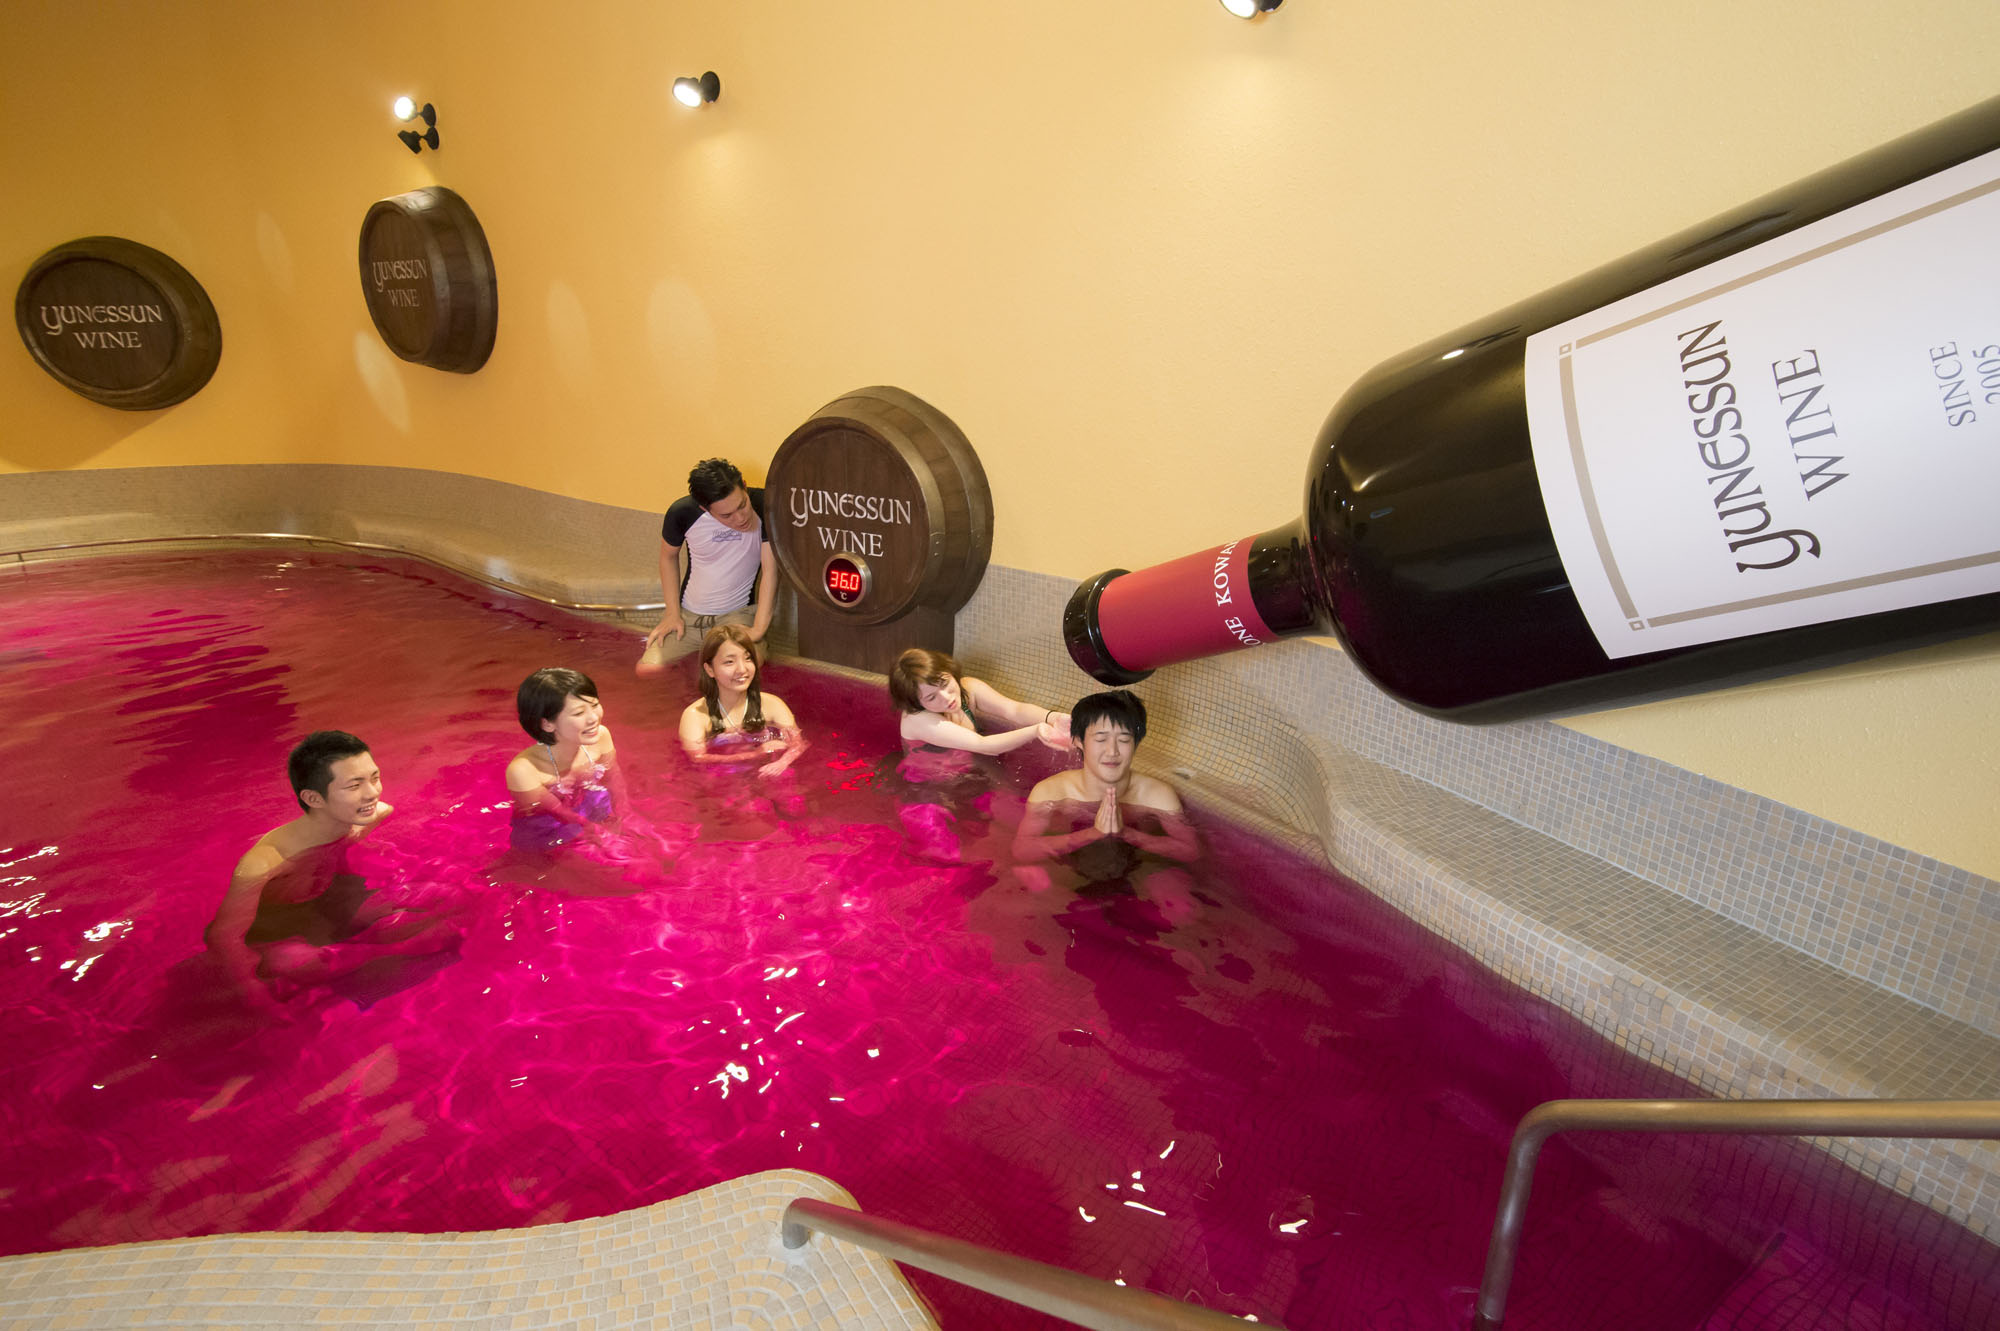 Drink bathing: Yunessun Spa Resort's red wine bath can be as much of a hit with kids as it is with adults. | YUNESSUN SPA RESORT